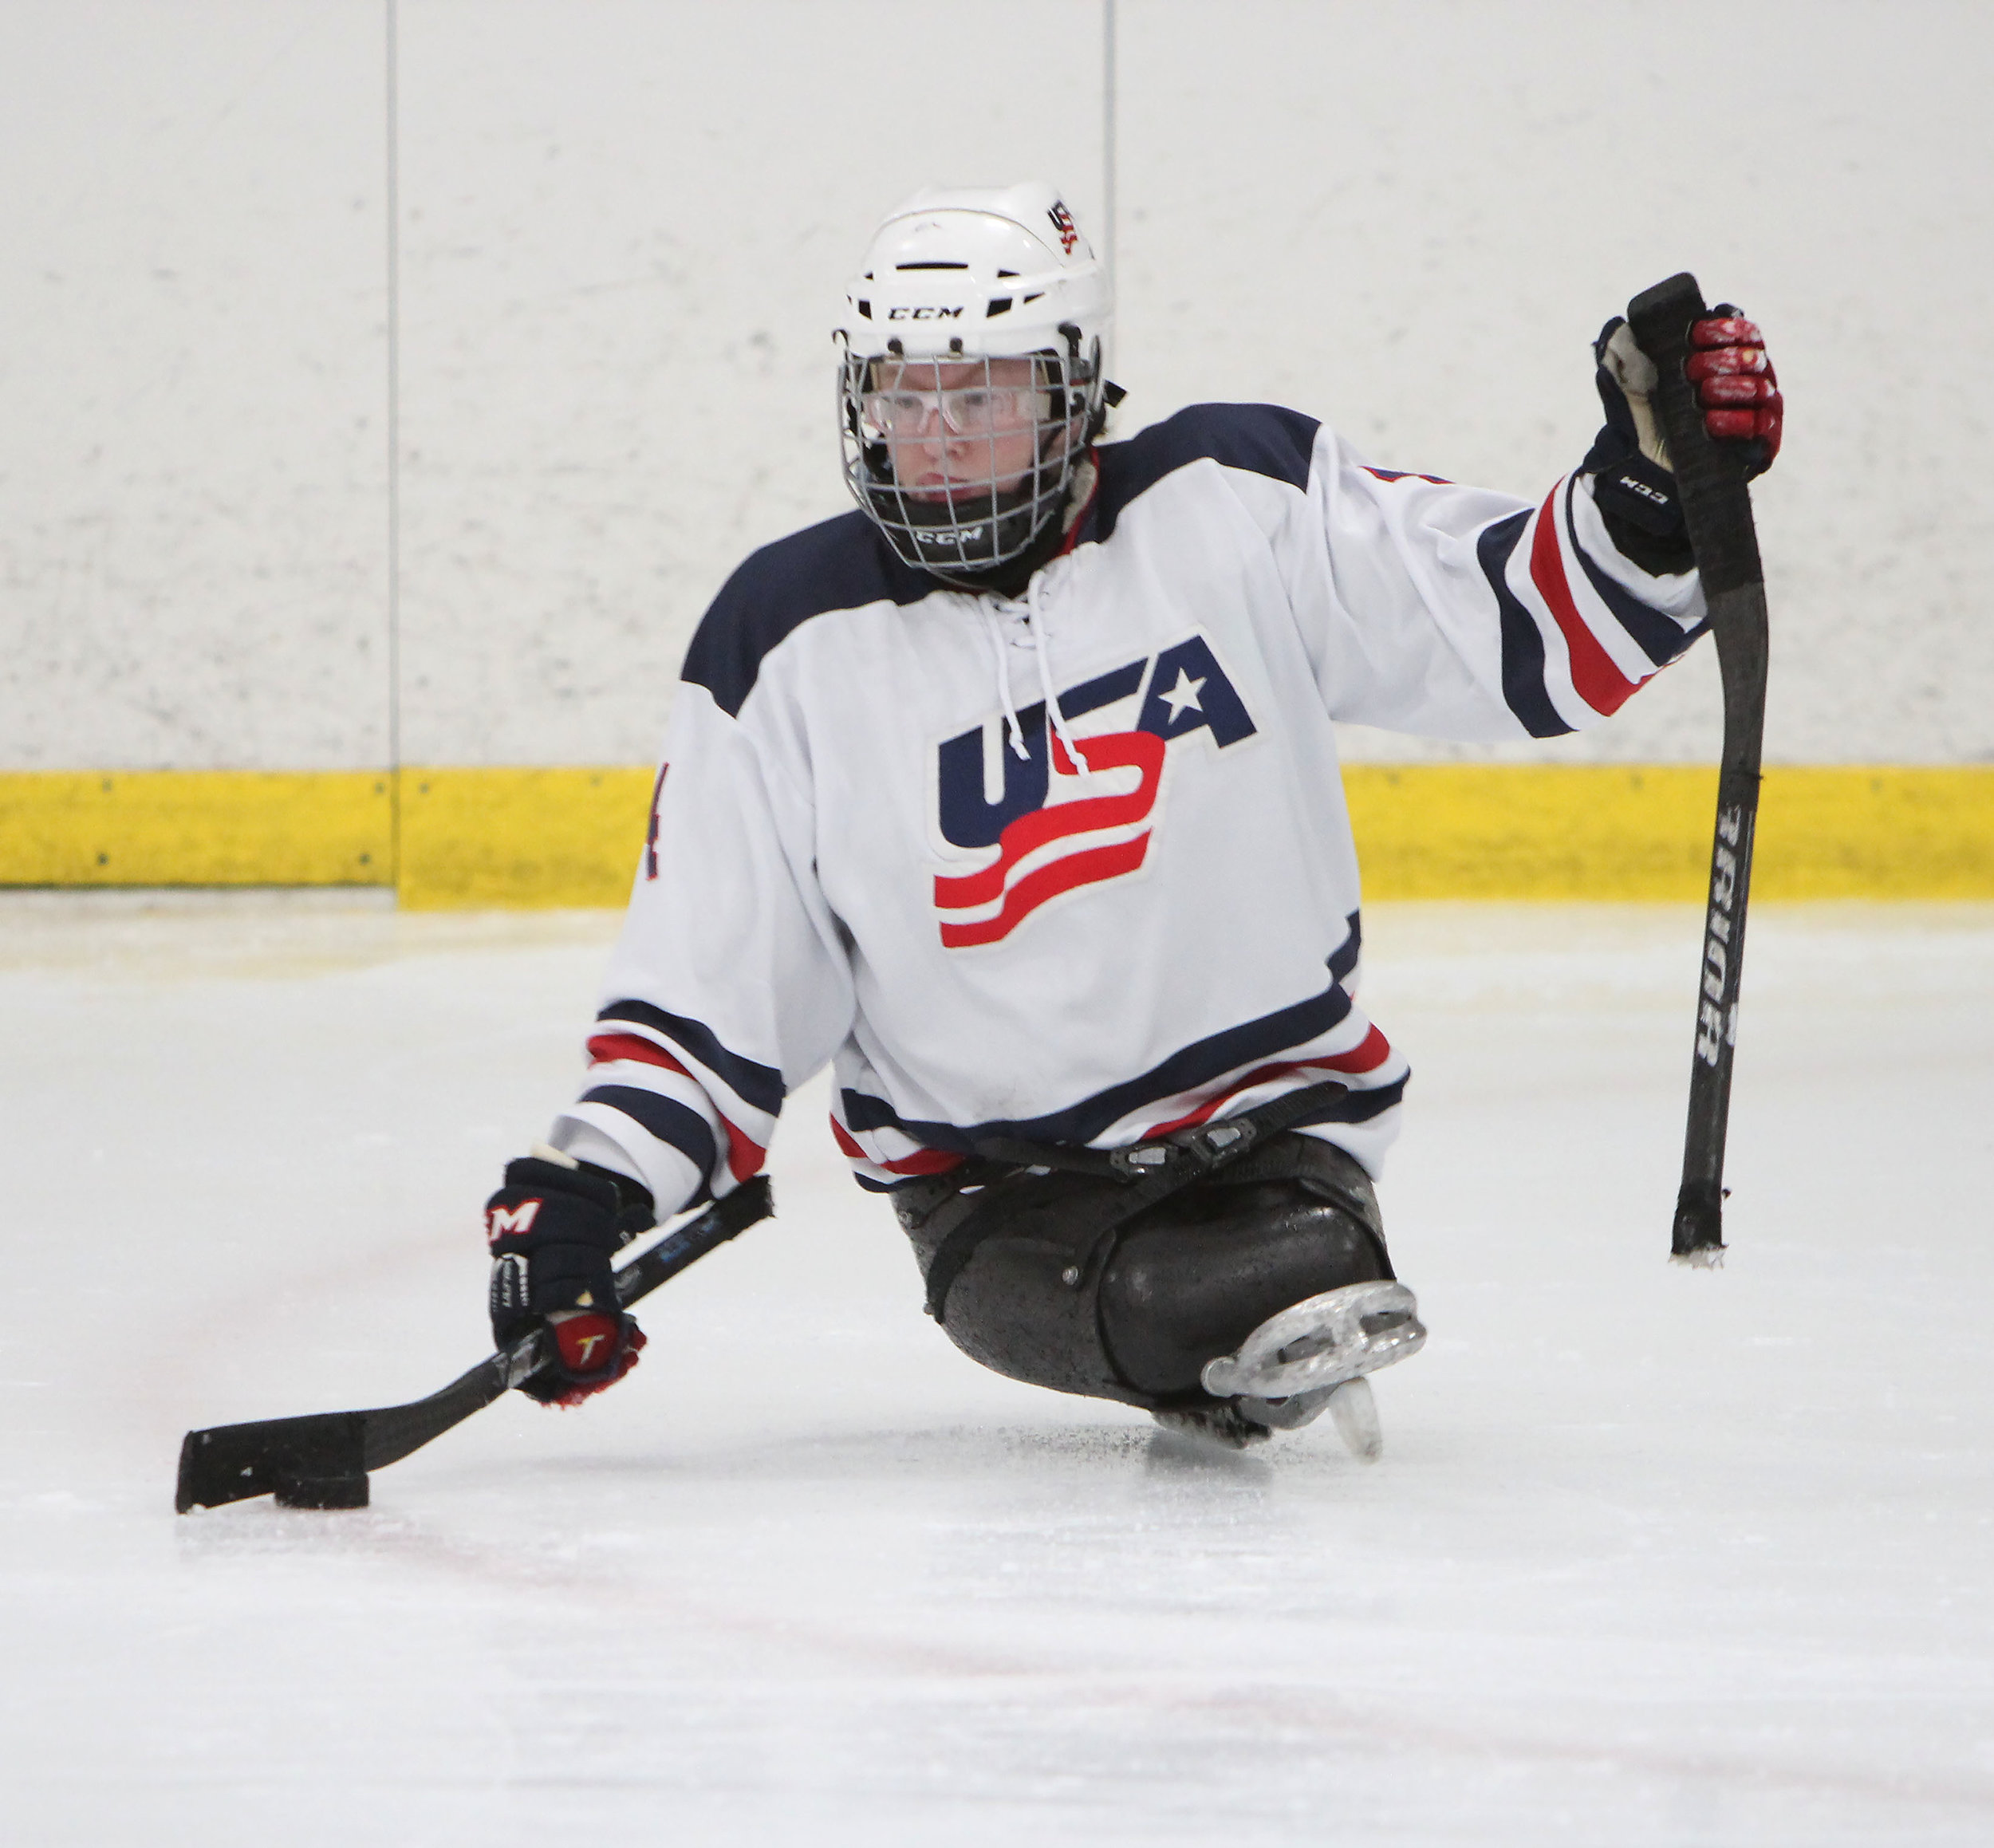 A U.S. Women's sled hockey forward grabs the puck before skating down towards the goal.